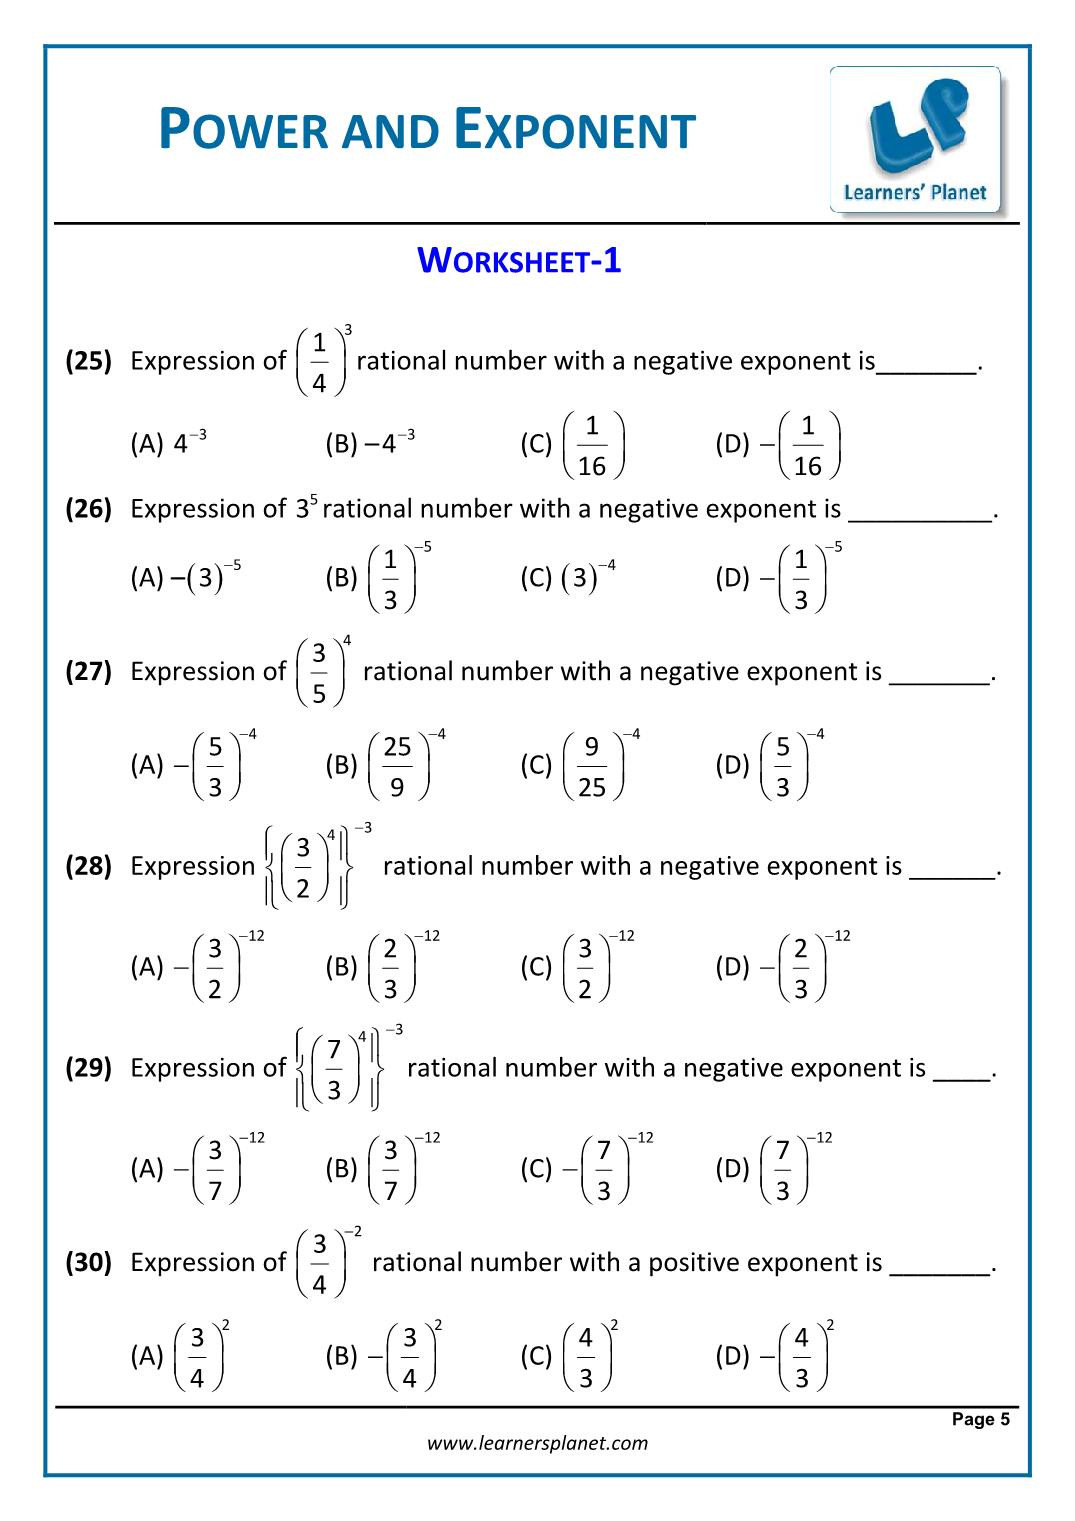 Polygon Worksheets 2nd Grade 8th Math Cbse Exponents and Powers Worksheets Geometry